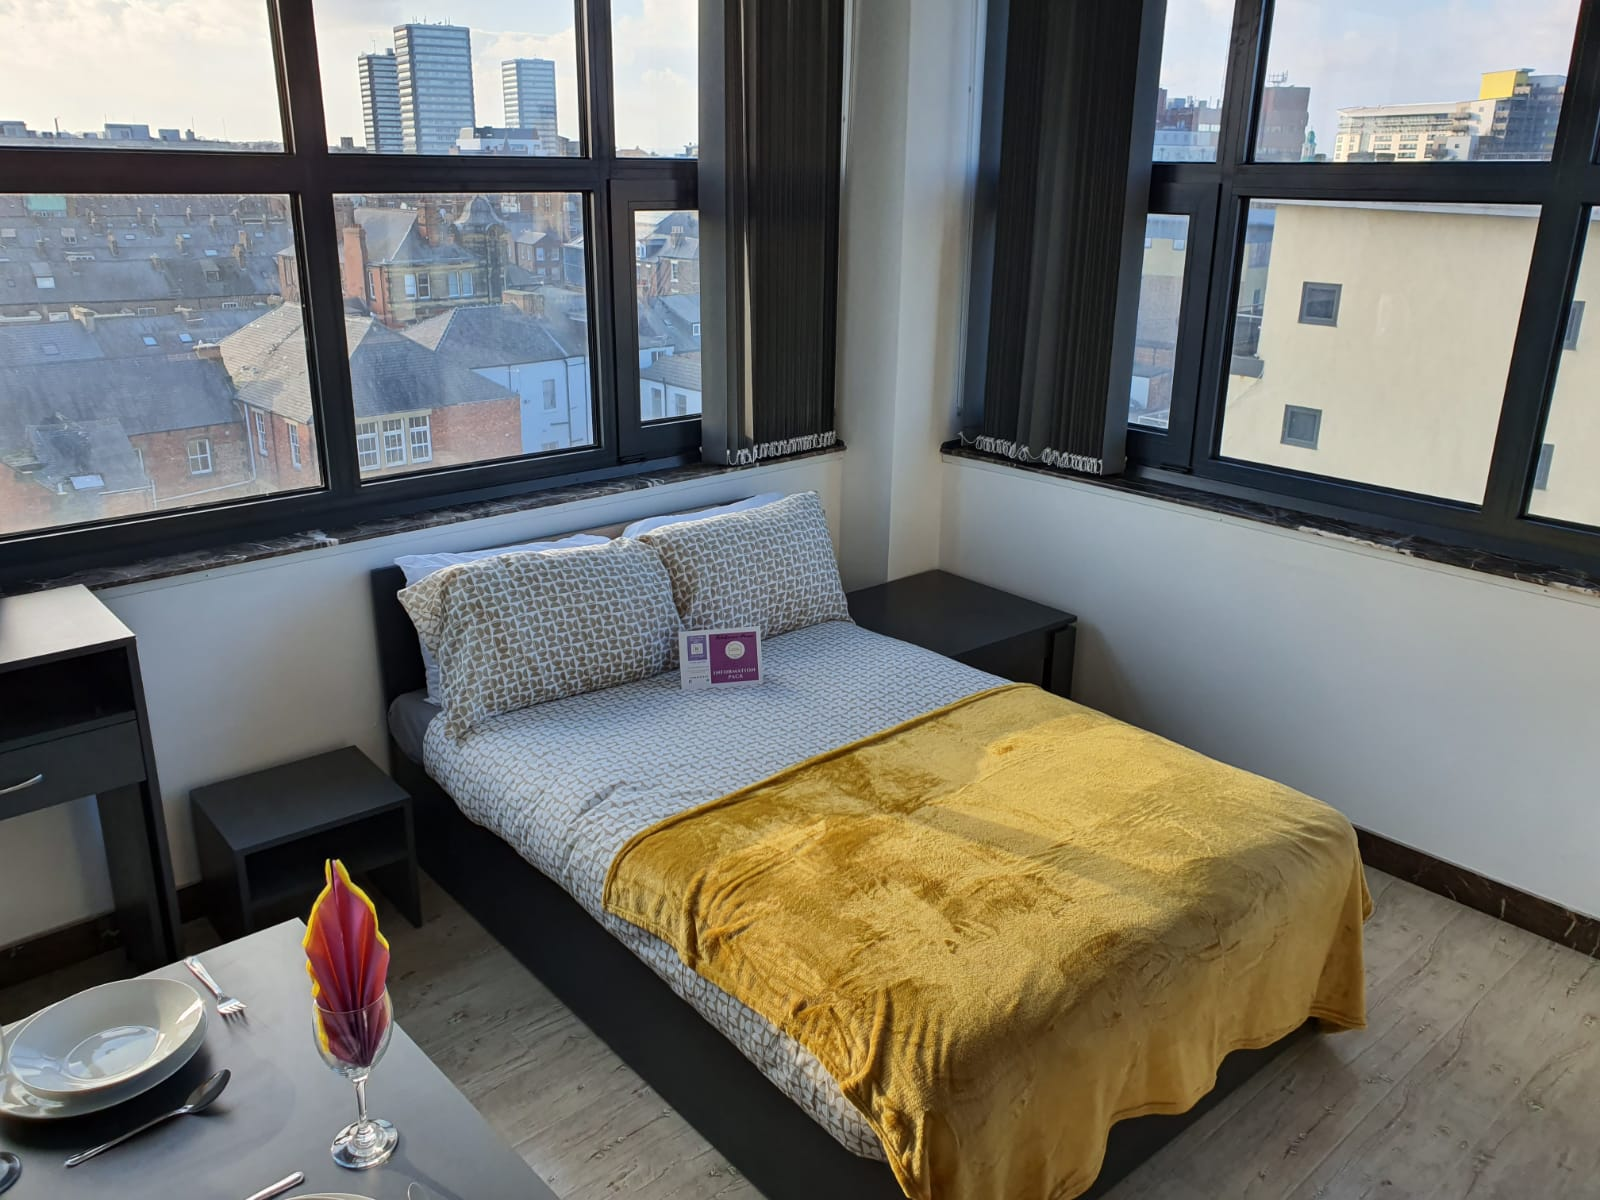 Bed at Sunderland Central Studios, Centre, Sunderland - Citybase Apartments